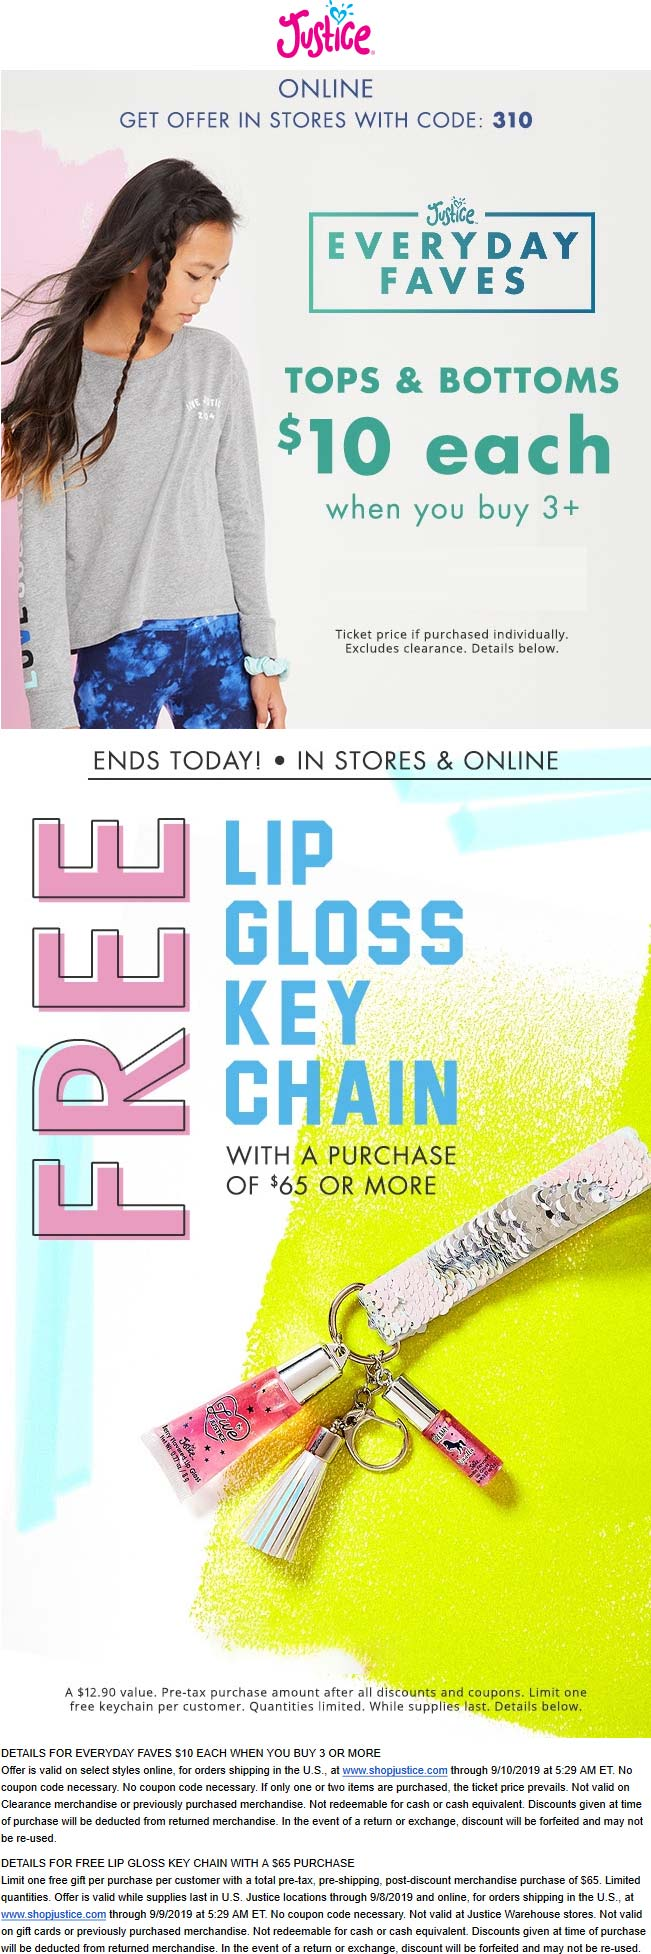 Justice.com Promo Coupon $10 tops & bottoms + free gloss keychain at Justice, ditto online